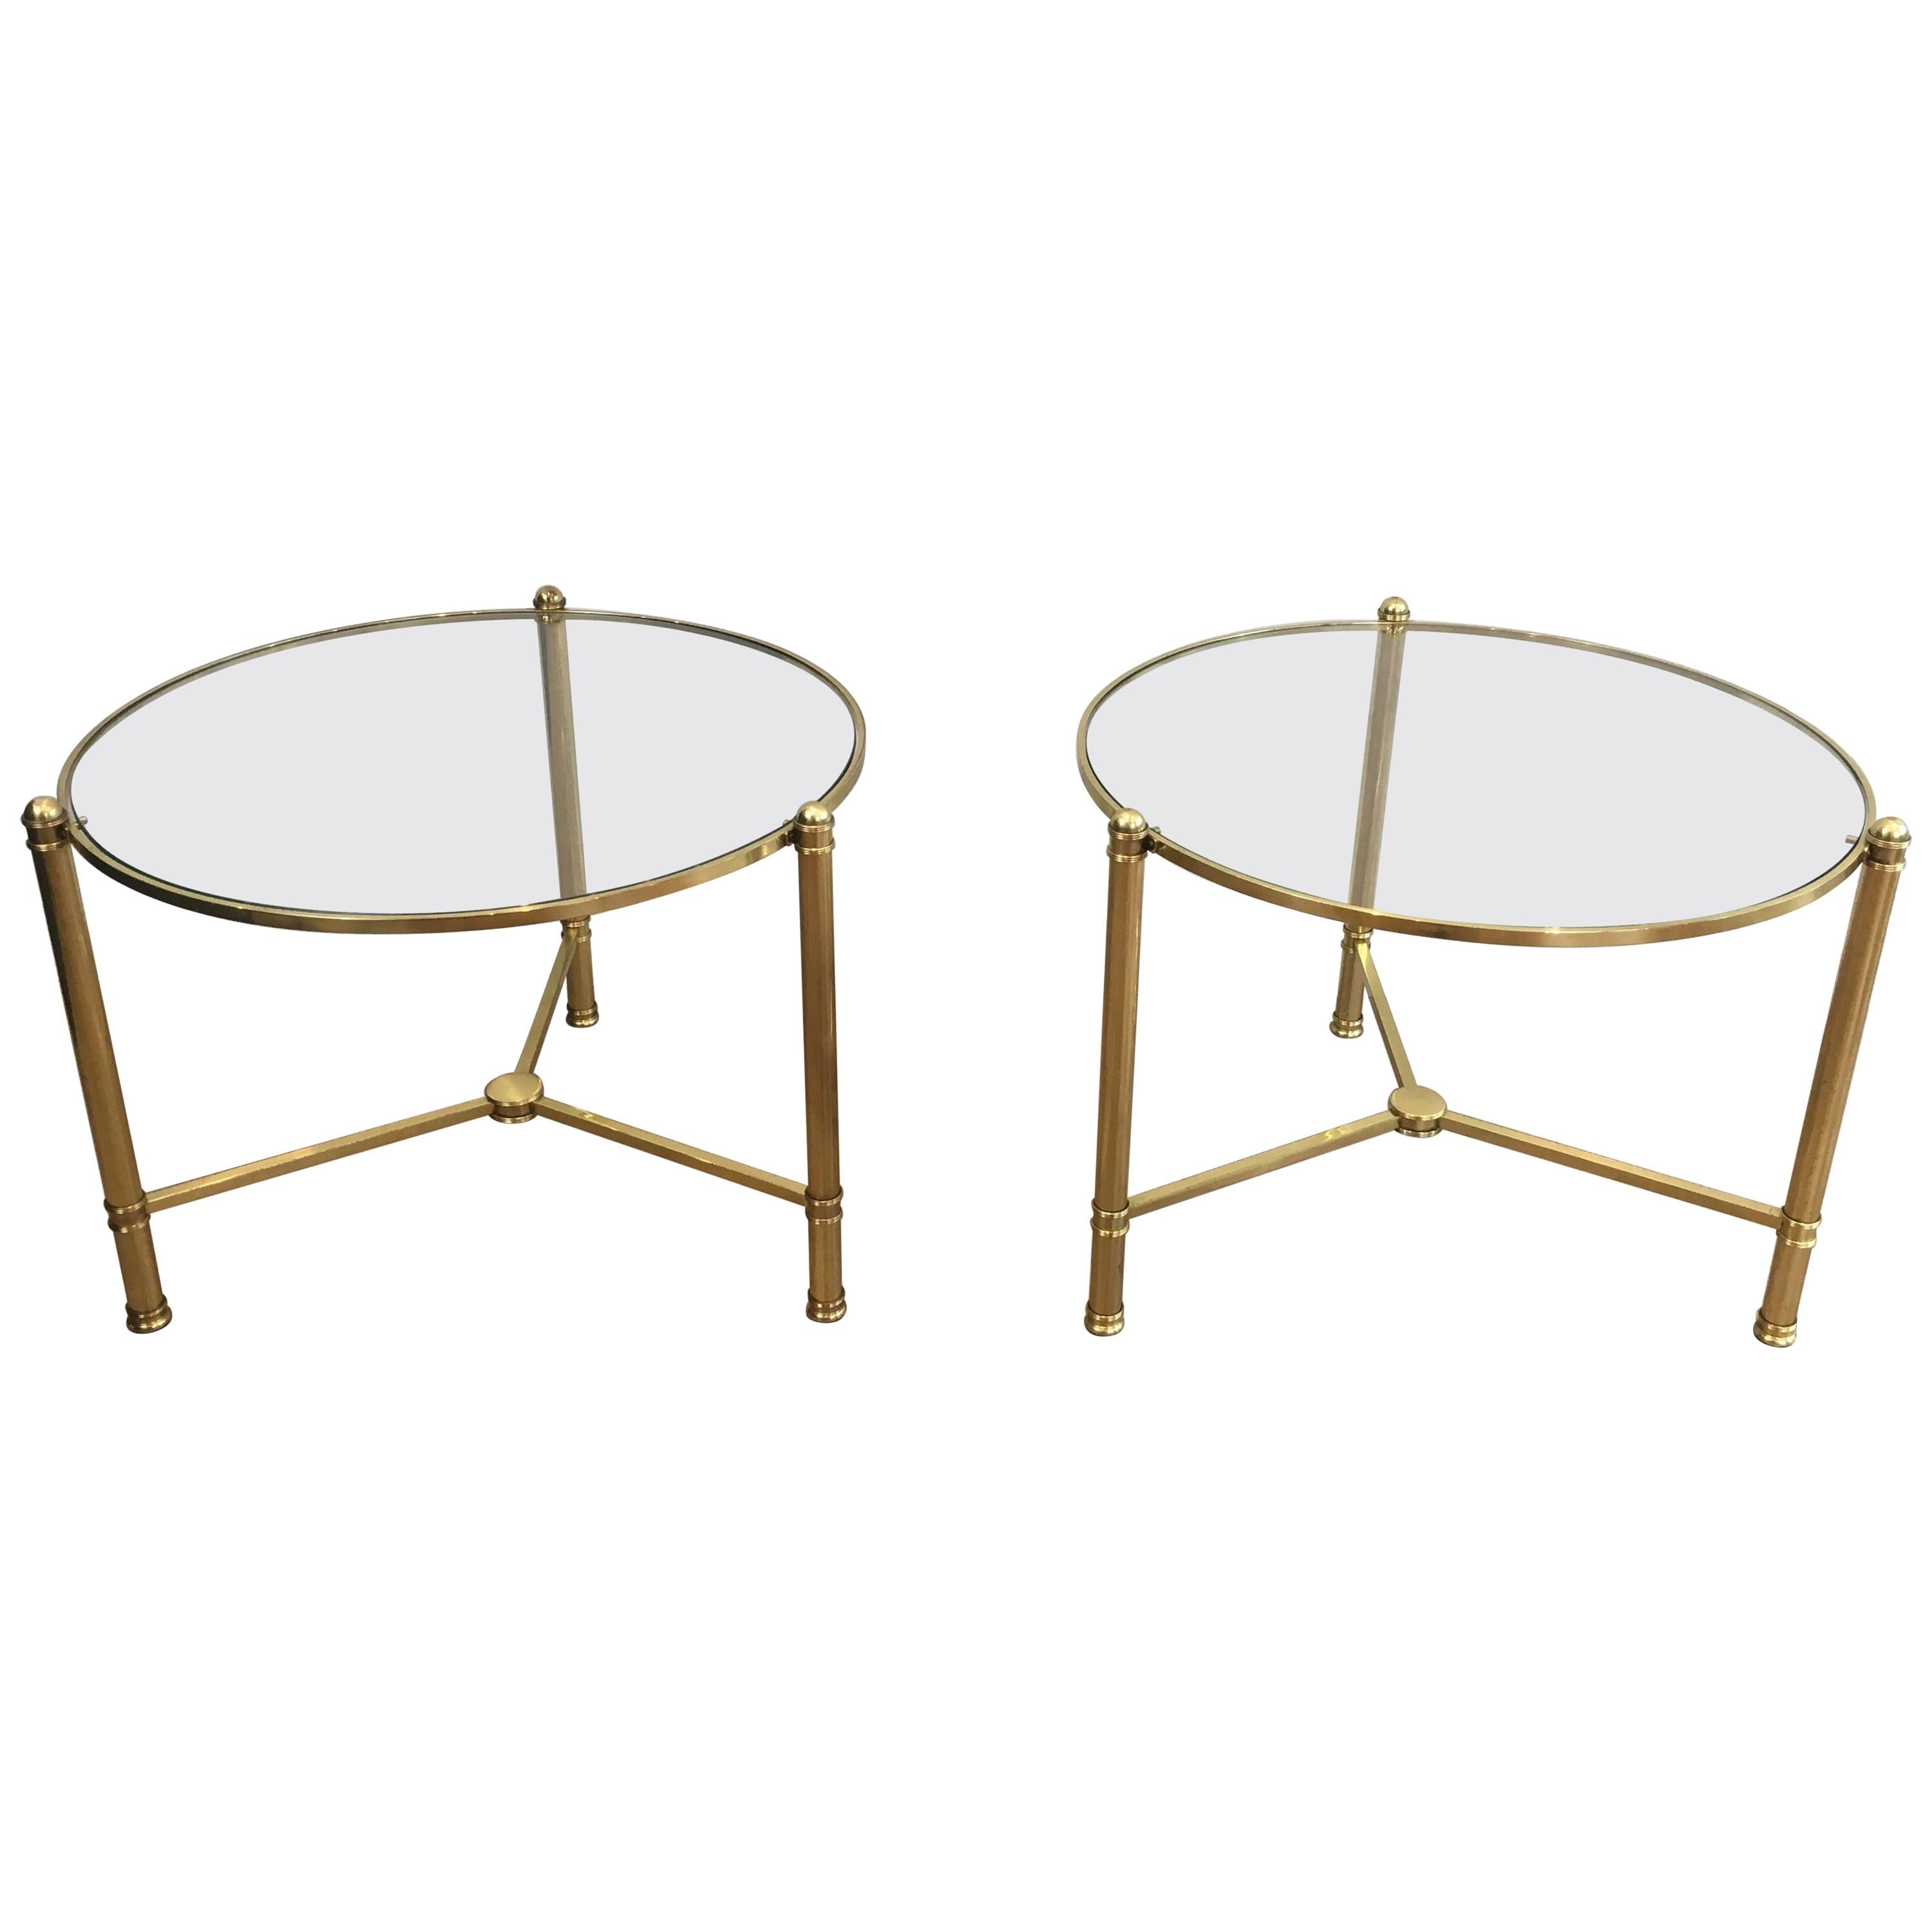 Pair of Round Brass Side Tables, French, circa 1970